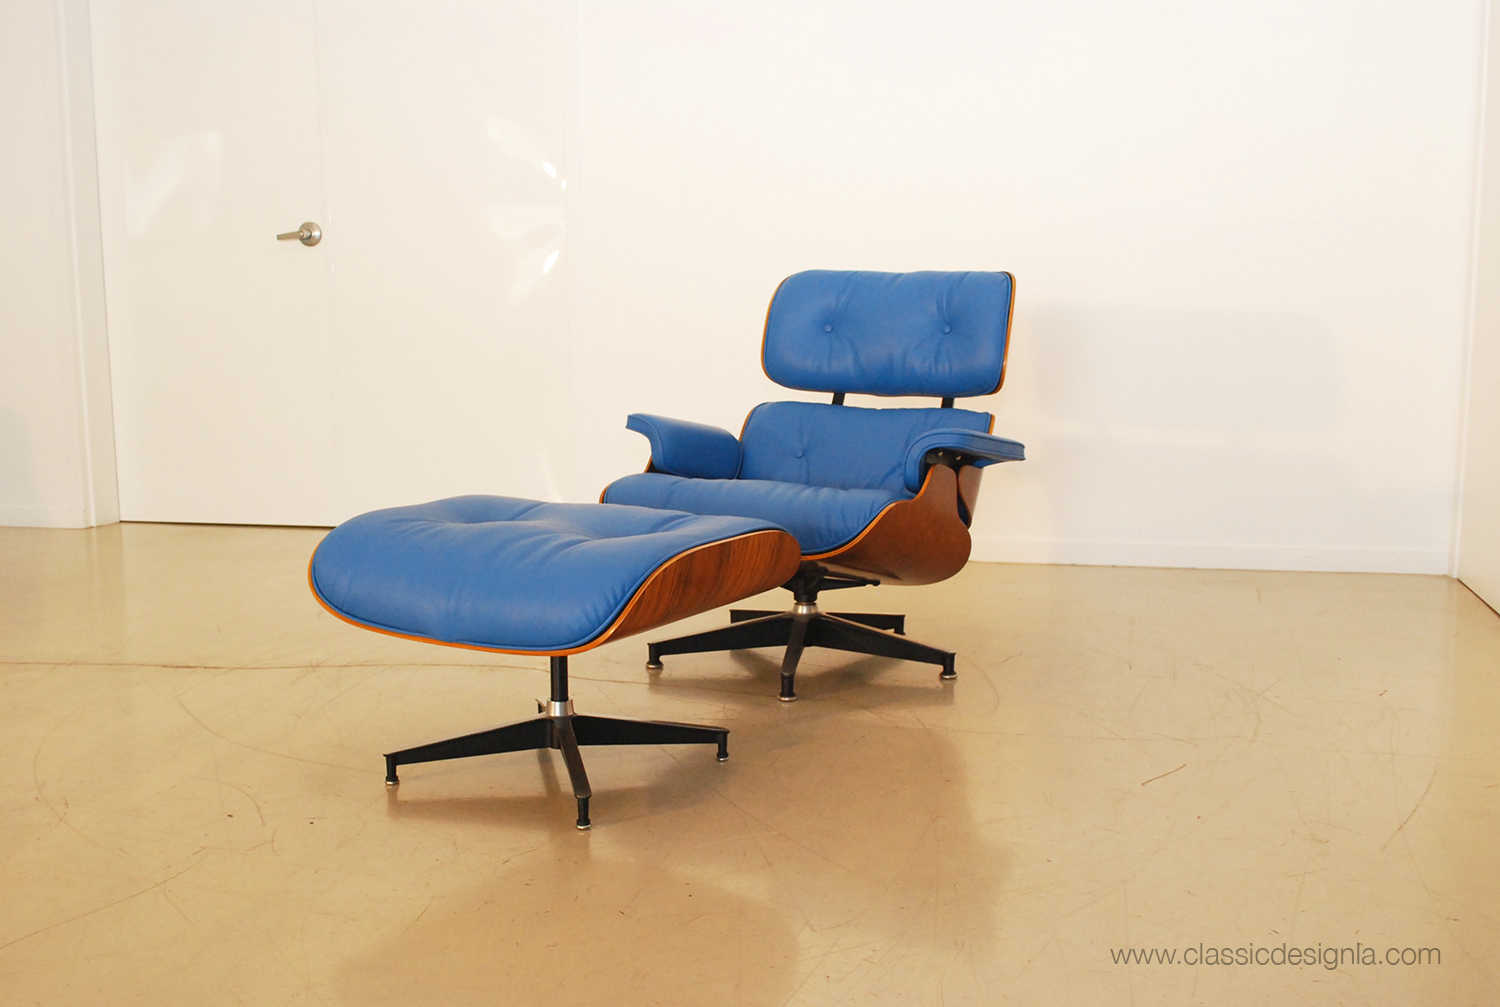 Classic Design Reupholstered BLUE Herman Miller Eames Chair